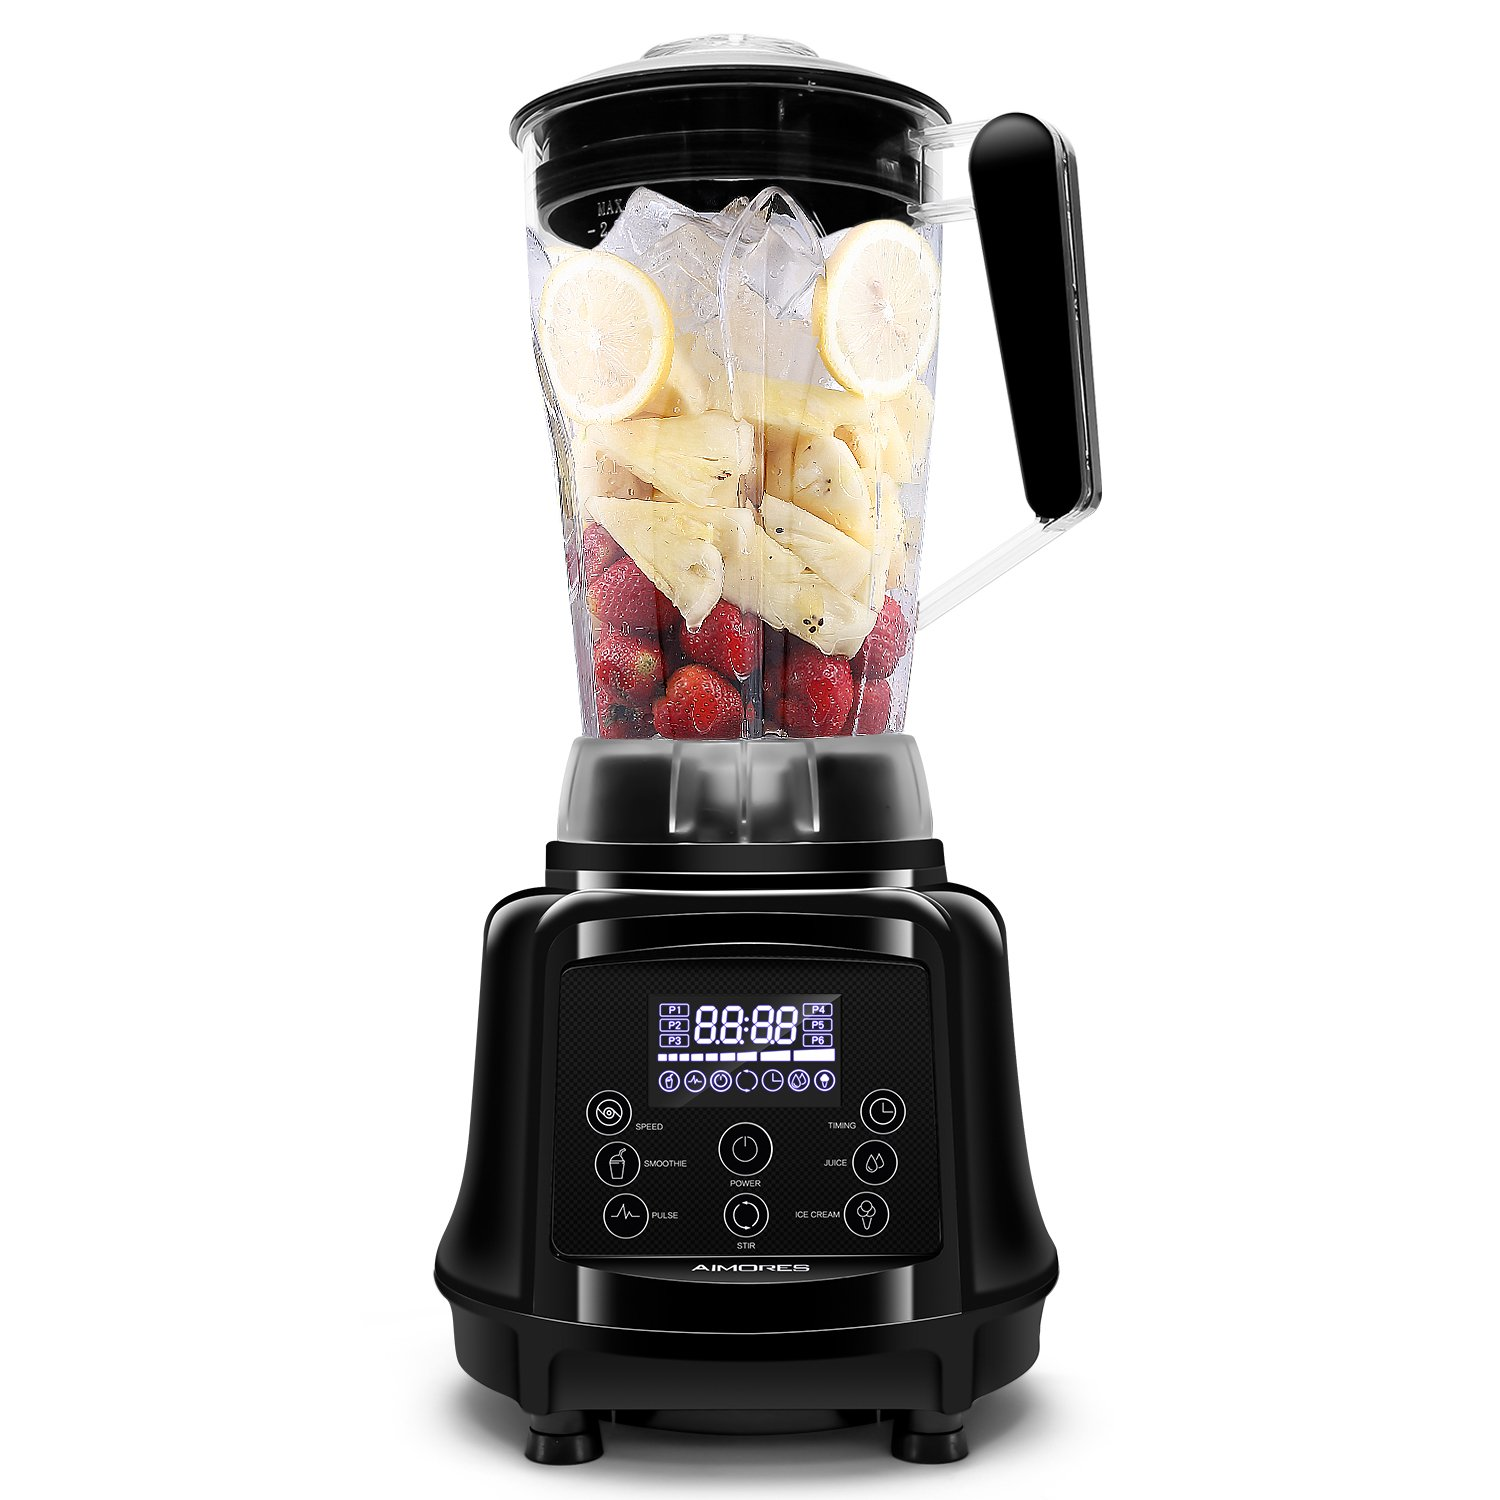 AIMORES Blender for Smoothies Heavy Duty, 75oz 3 in 1 Programmed Commercial High Speed Juice Blender(28,000RPM), Powerful Blender, Auto Clean & Timing, 6 Blades, ETL/FDA Approved - (Black)